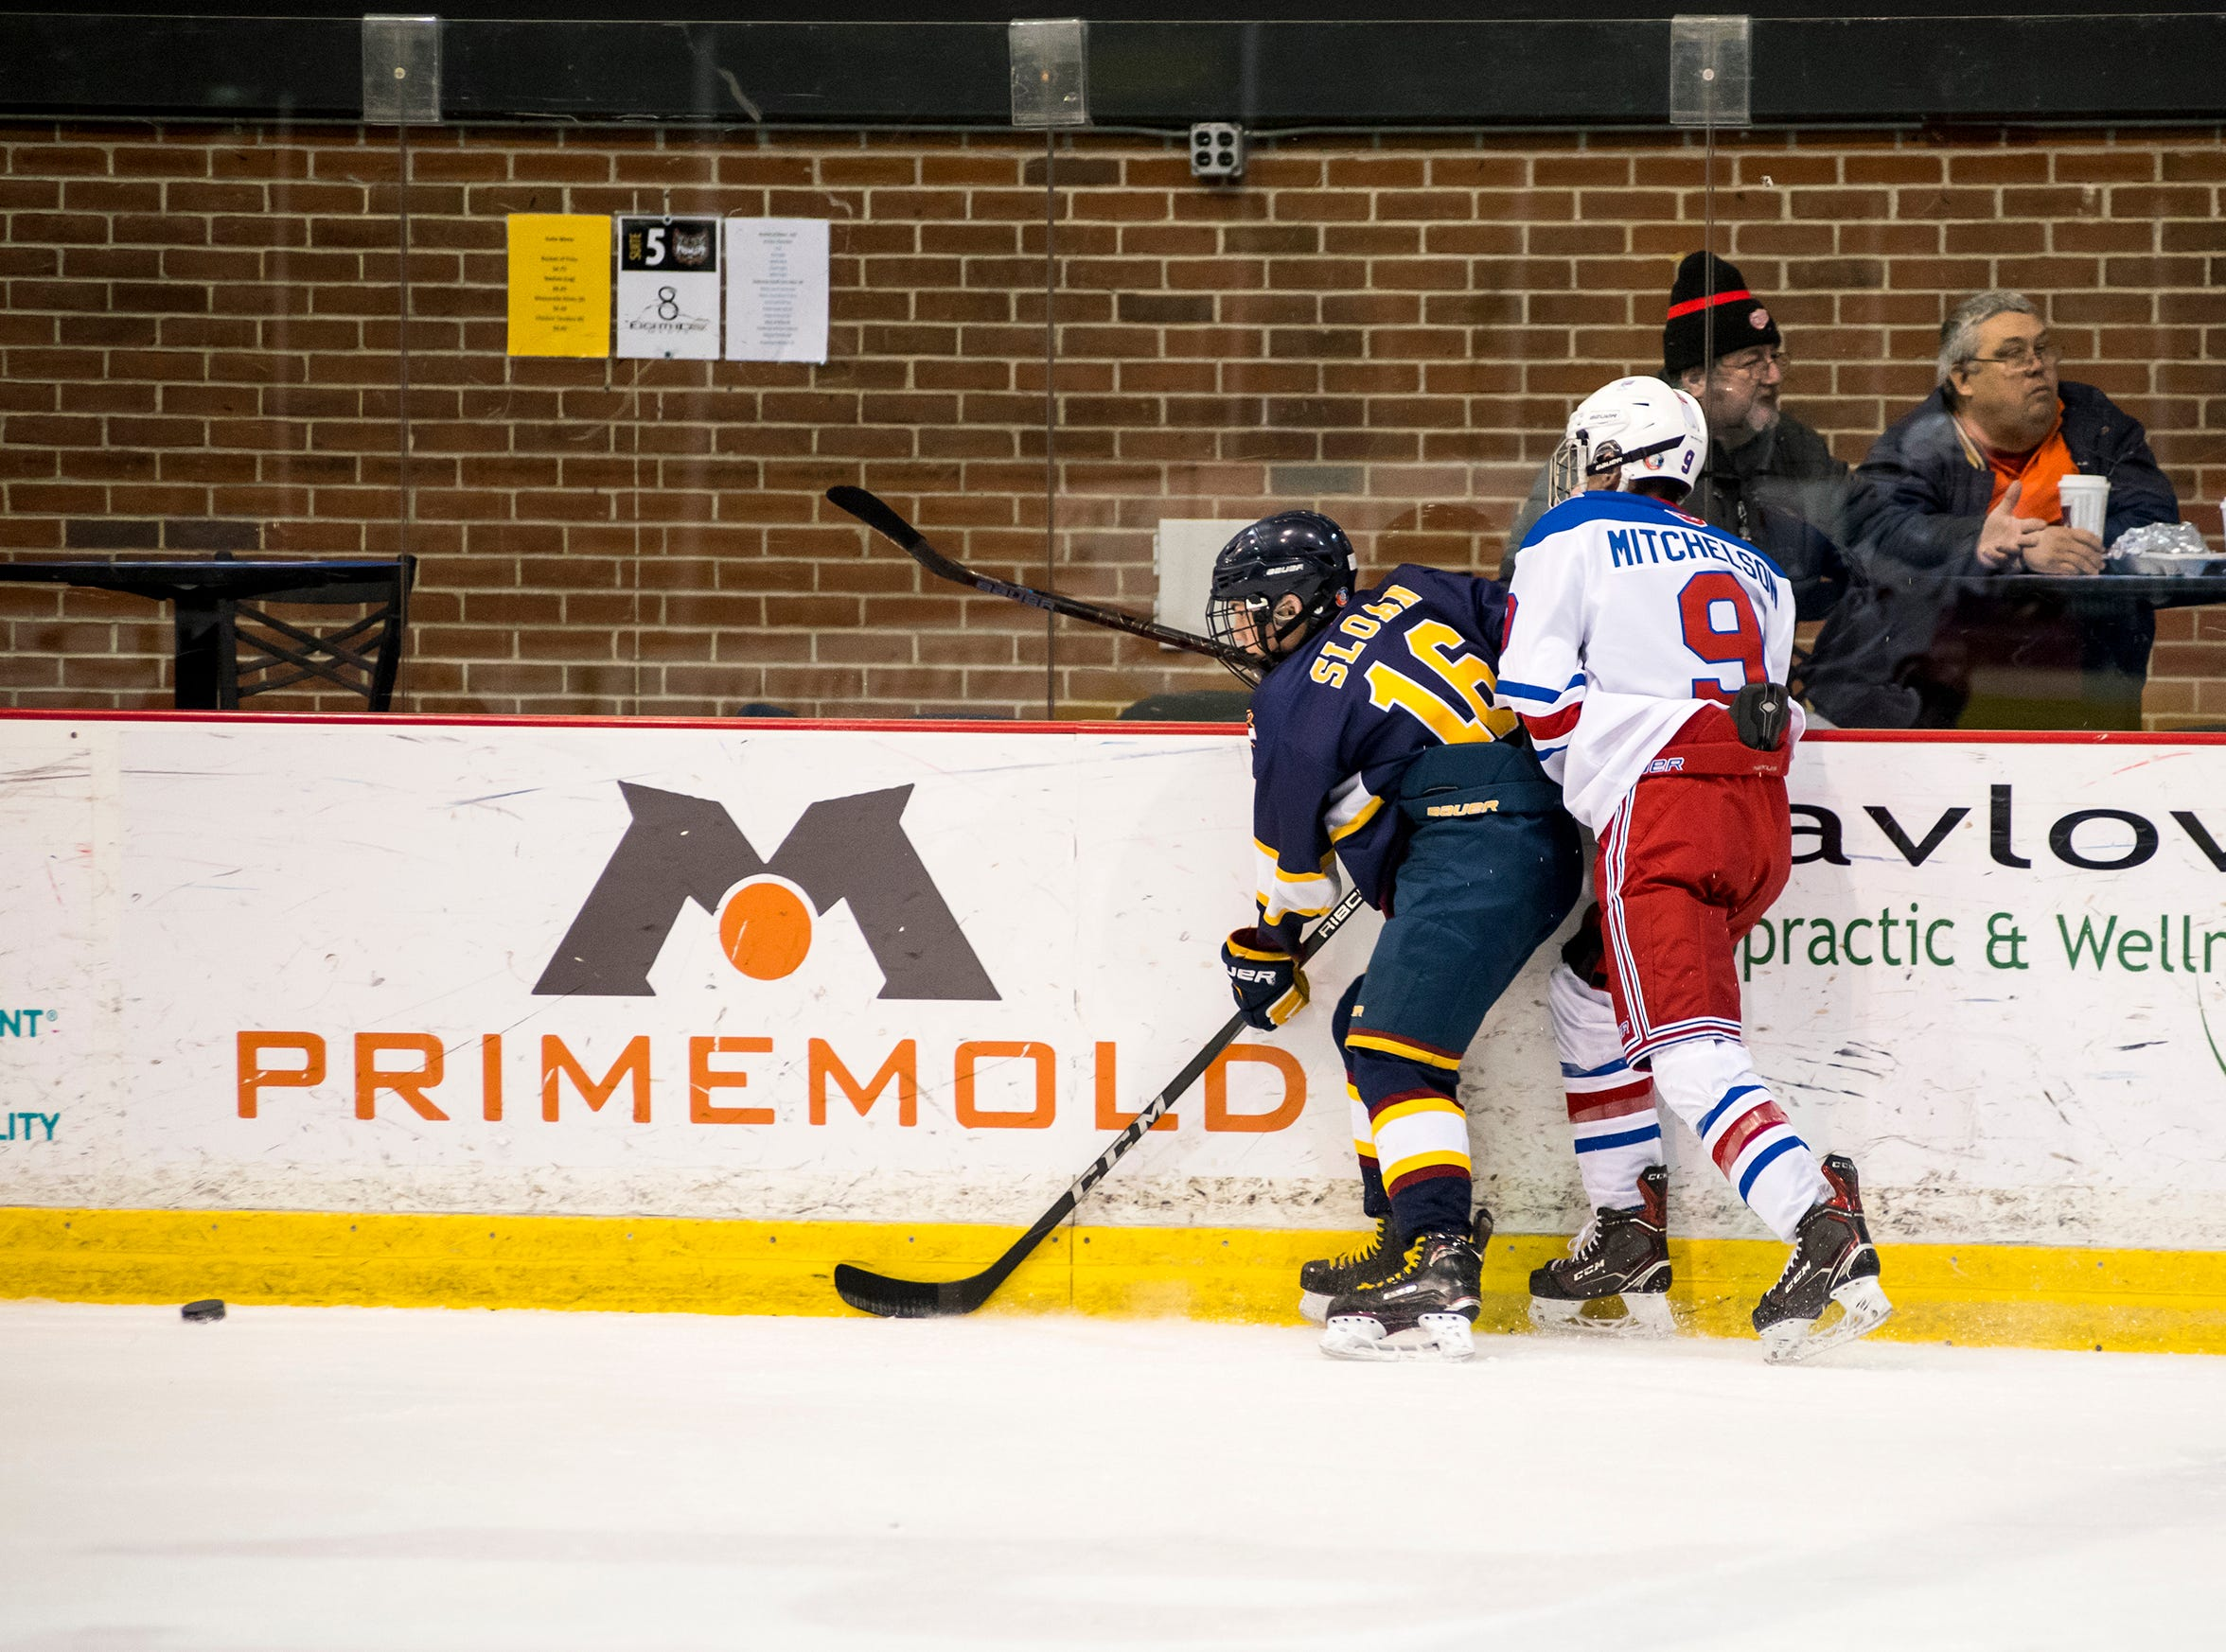 Burlington Eagles Gold forward Colin Sloan (16) holds Oakville Rangers forward Talon Mitchelson against the wall during their Silver Stick Finals BMA match Saturday, Jan. 12, 2019 at McMorran Arena.